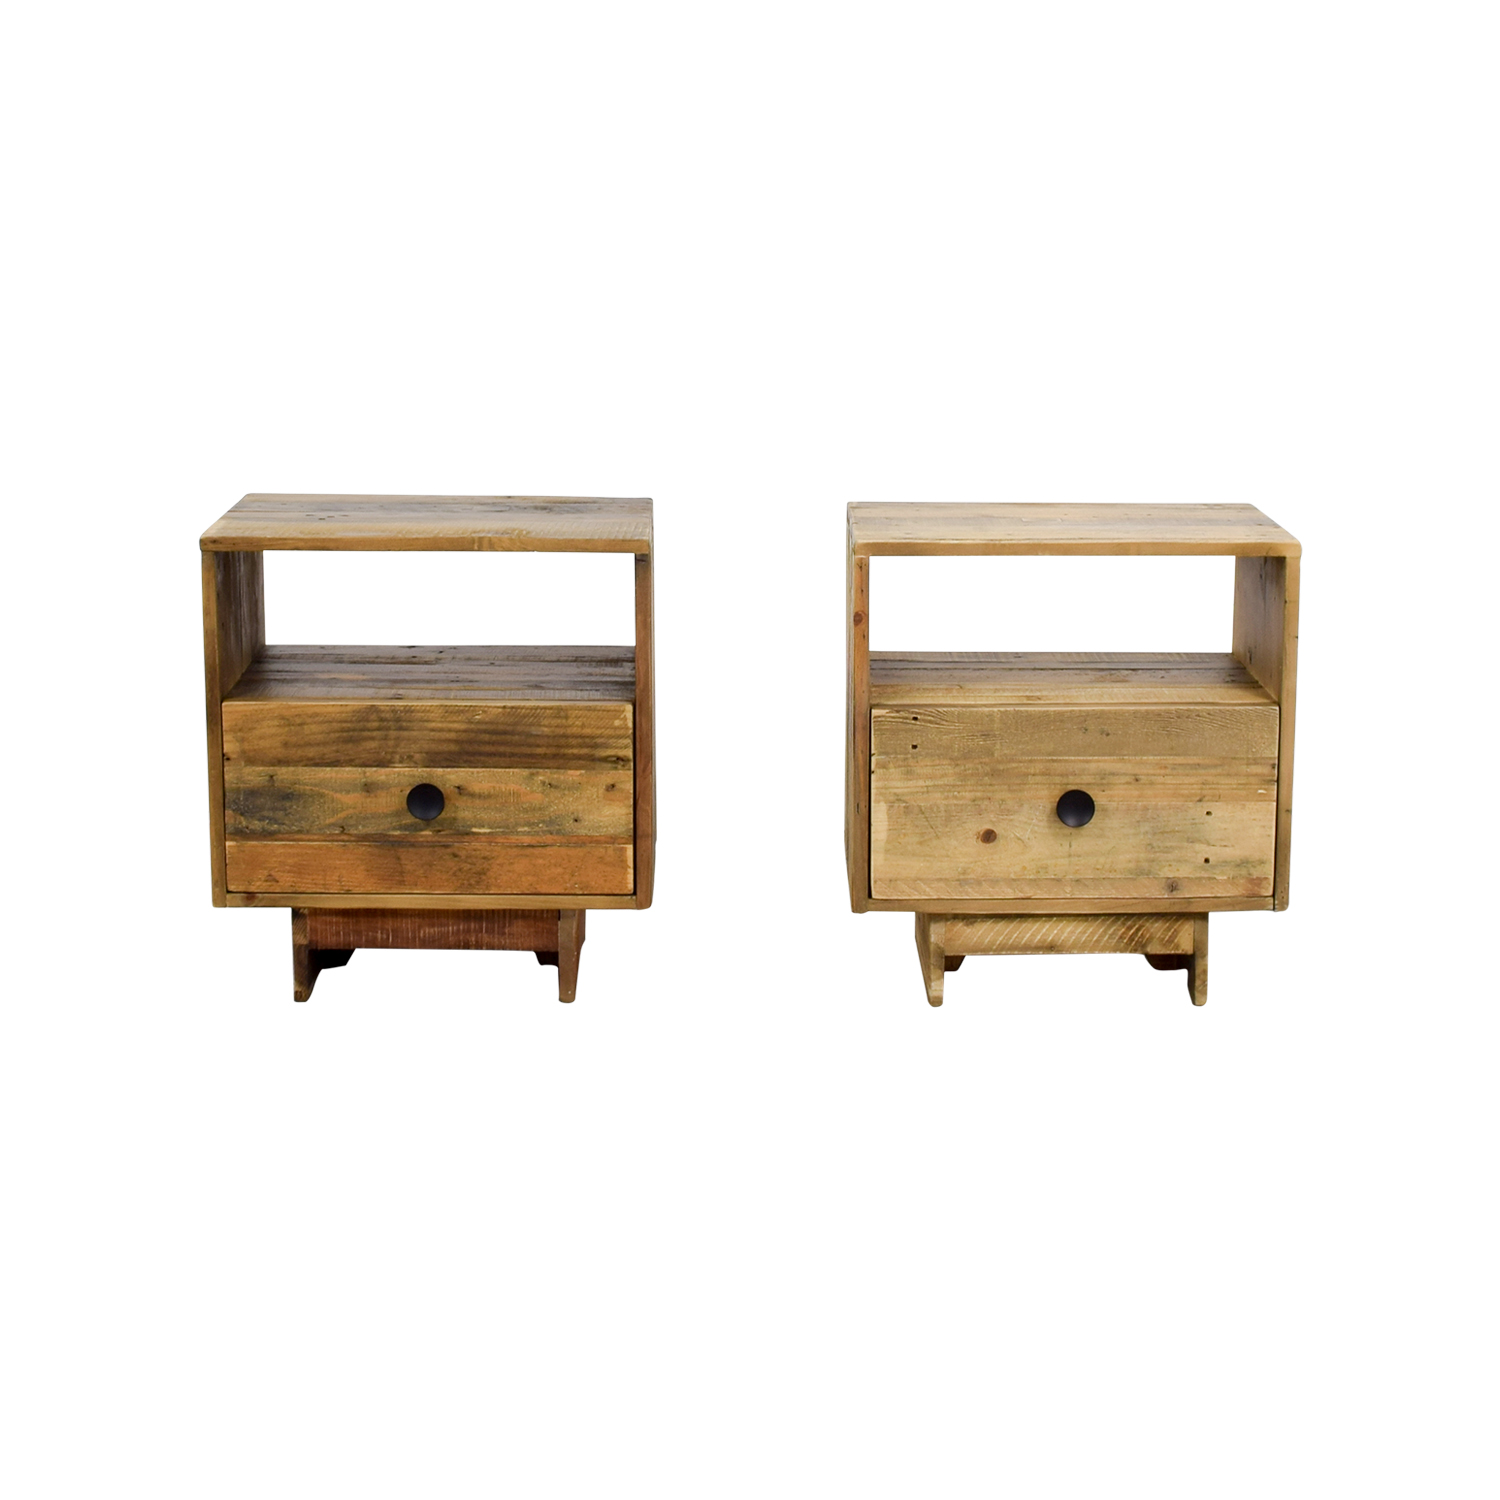 West Elm Emmerson Natural Reclaimed Wood Nightstand Nj